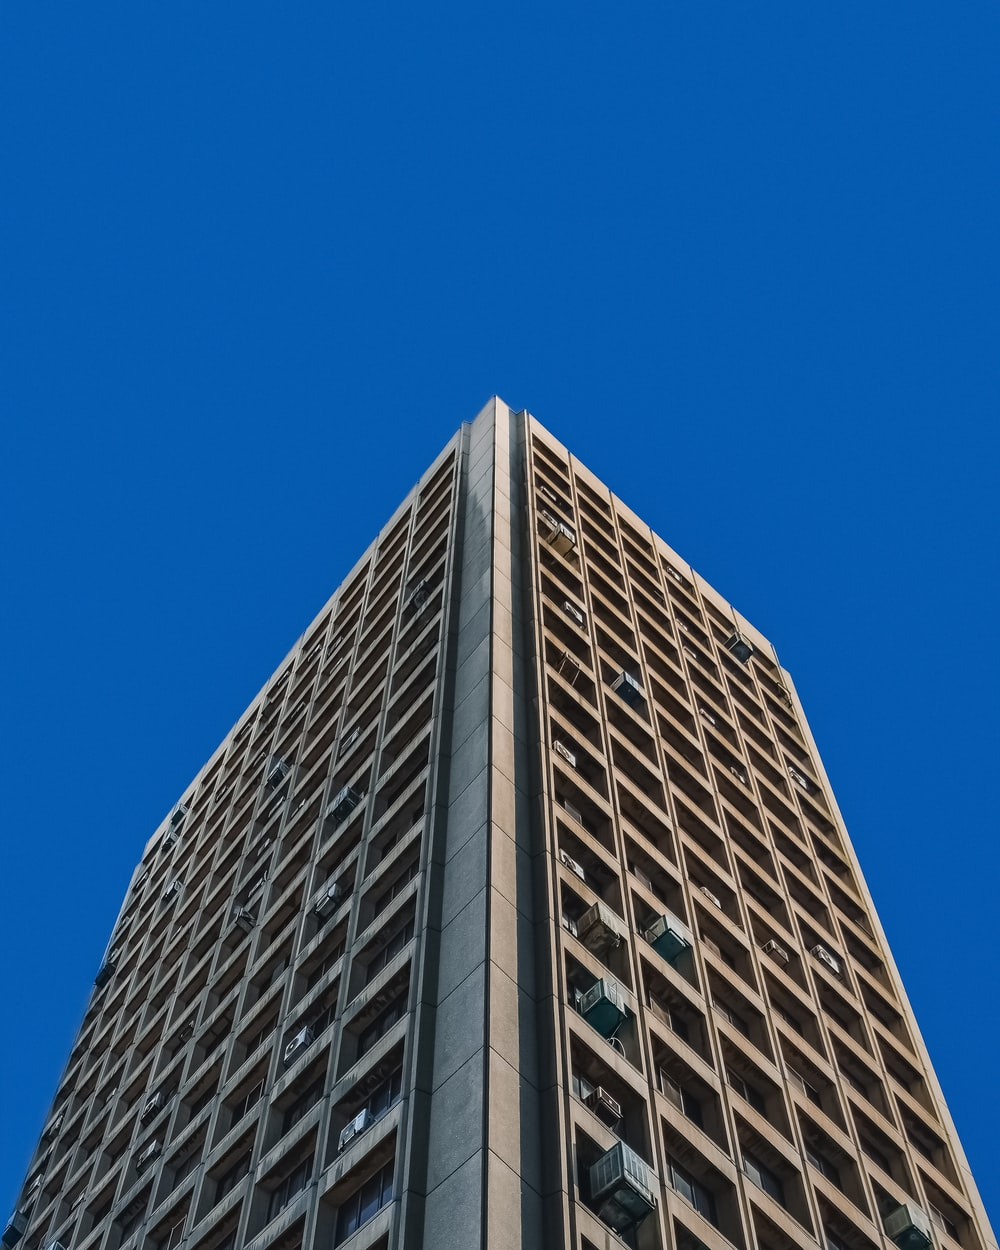 low angle photography of gray concrete building under blue sky during daytime